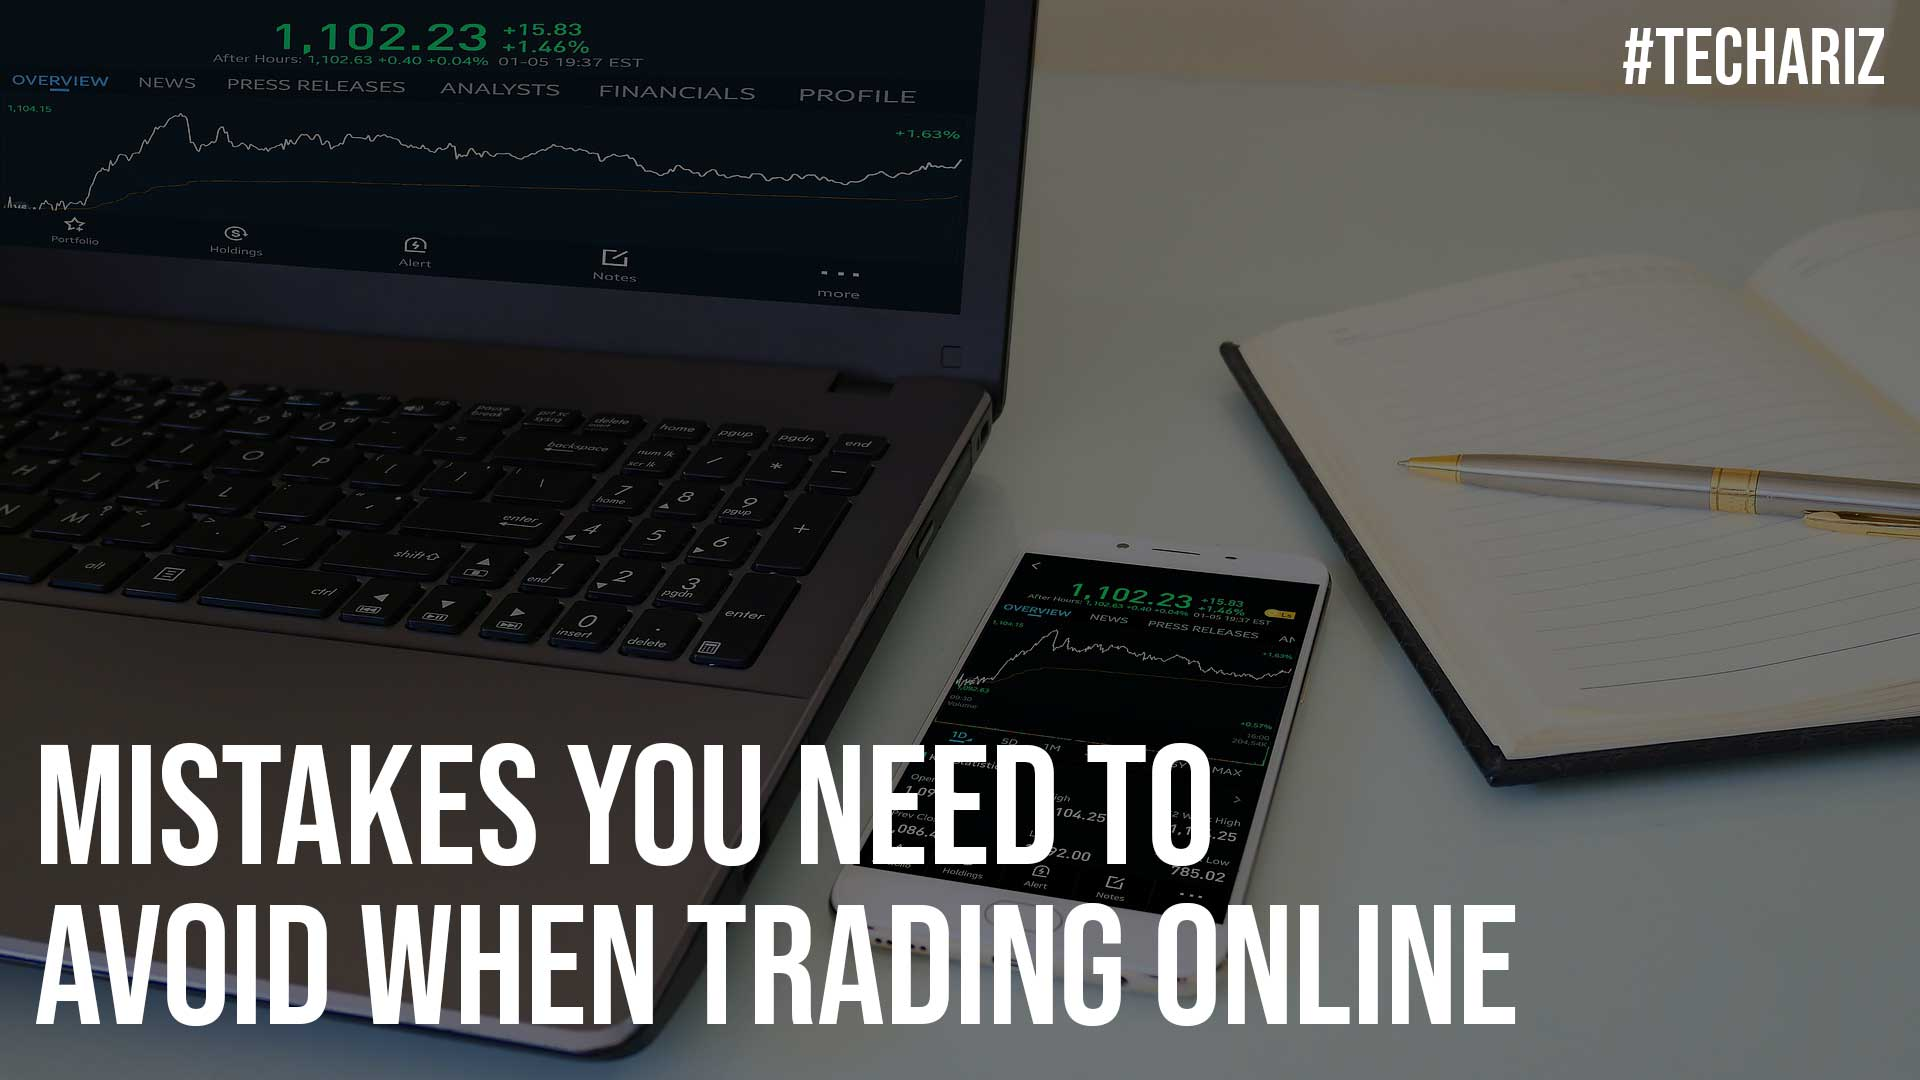 Mistakes You Need to Avoid When Trading Online